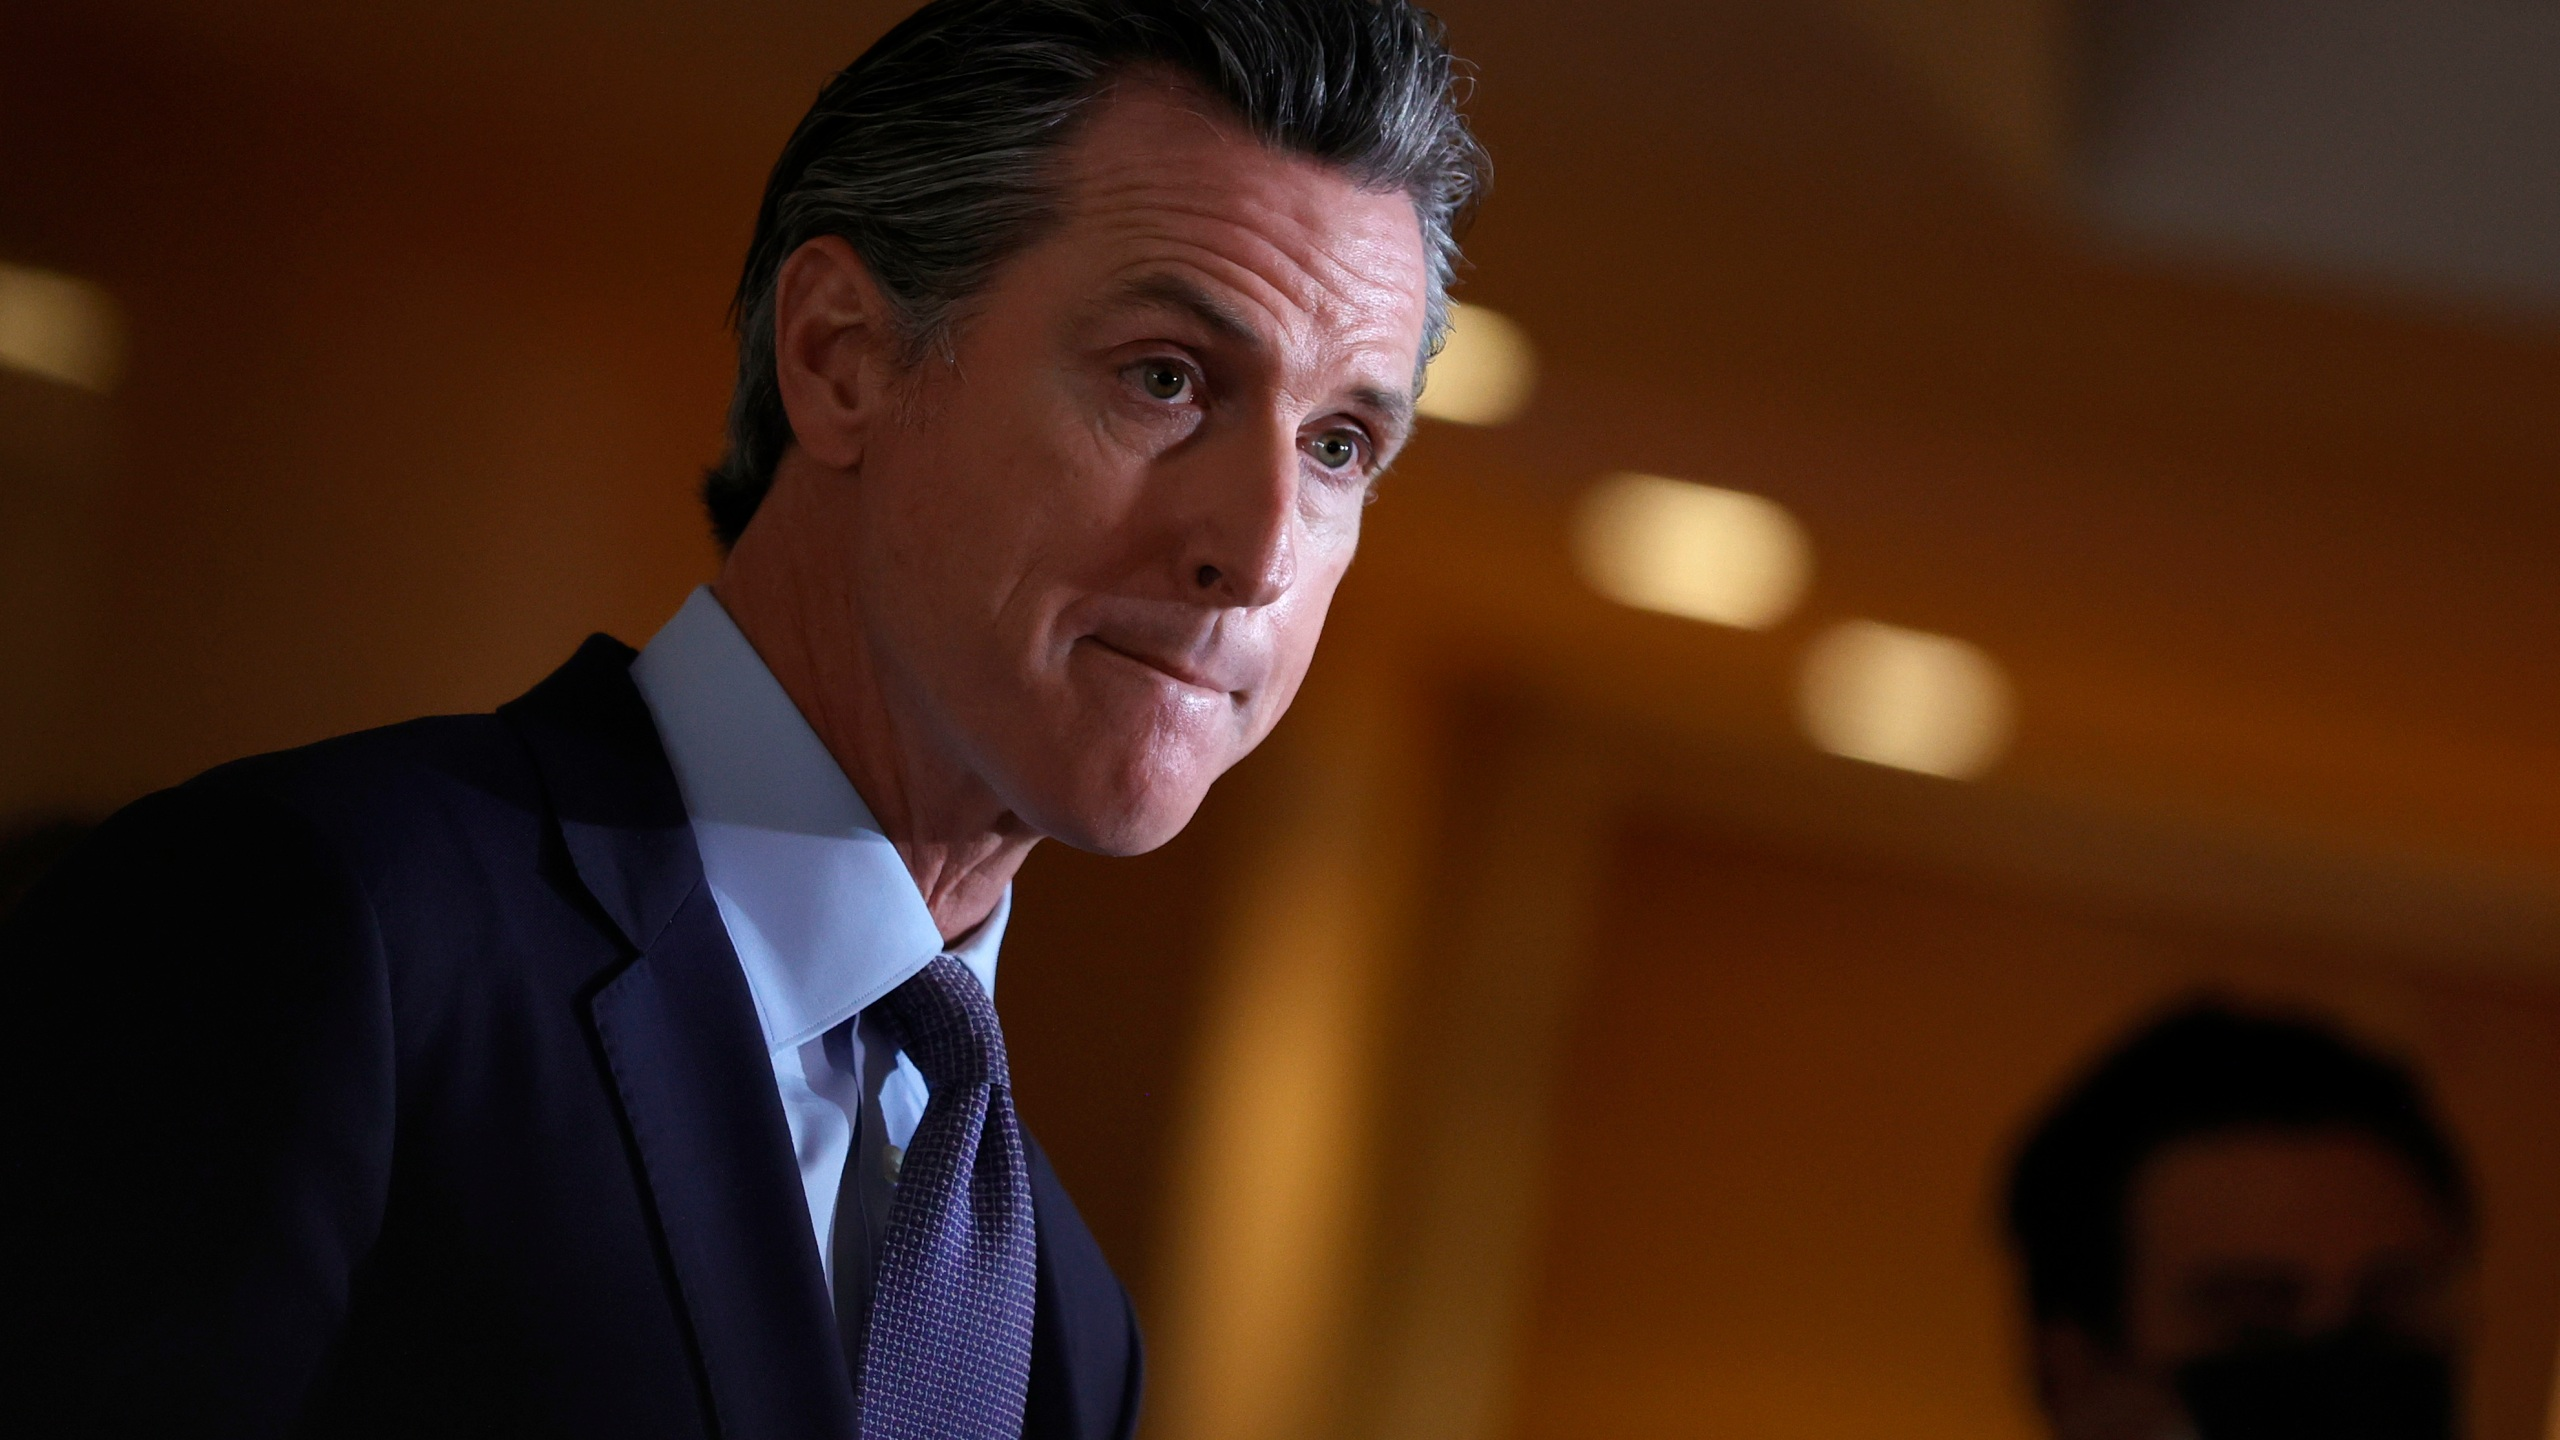 California Gov. Gavin Newsom speaks during a news conference with Bay Area AAPI leaders at the Chinese Culture Center of San Francisco on March 19, 2021. (Justin Sullivan / Getty Images)